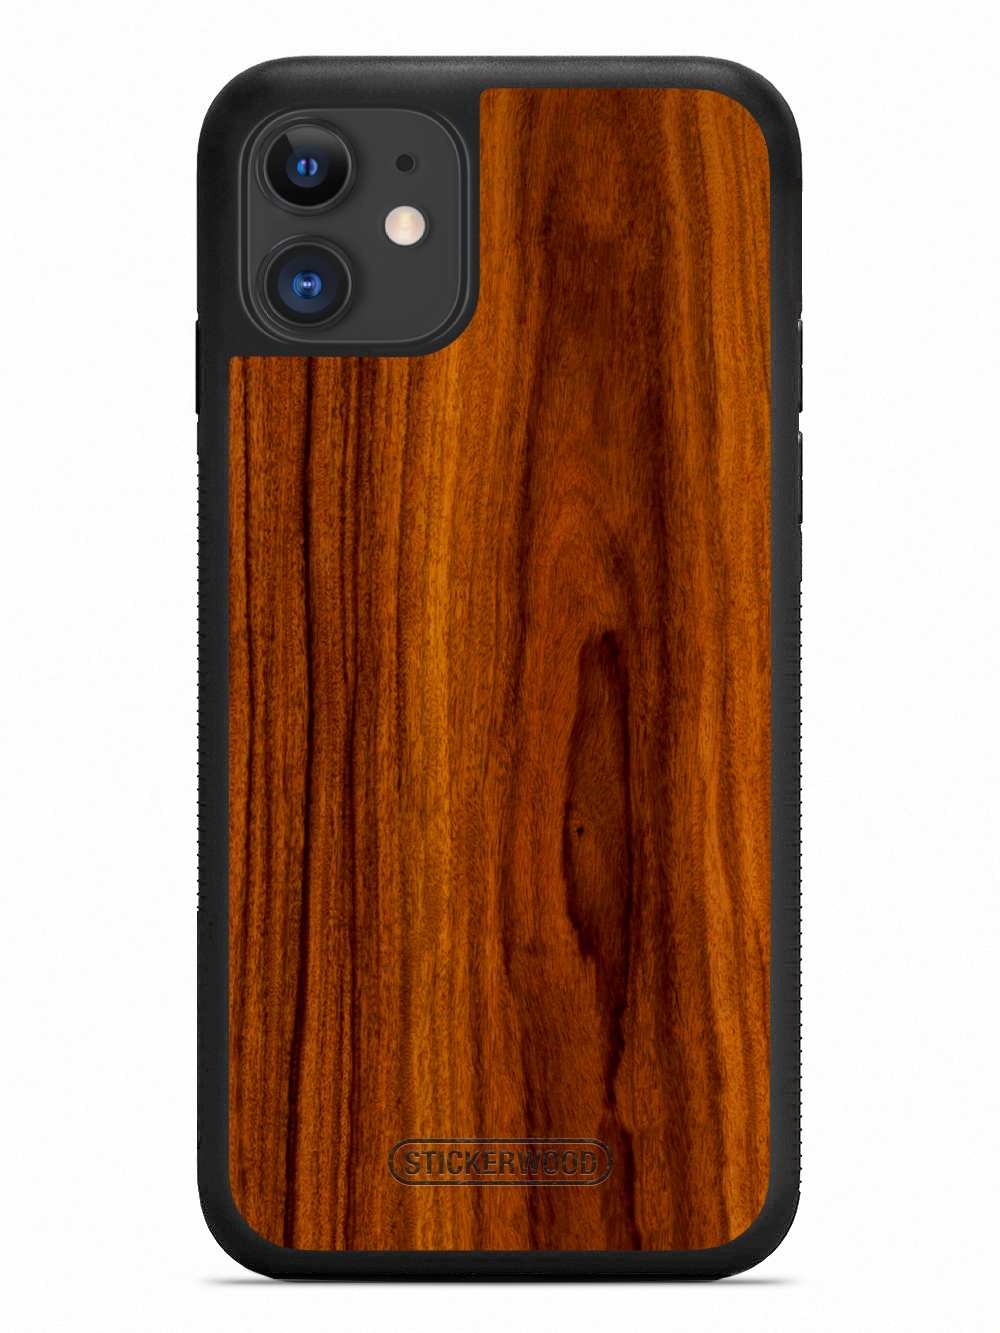 Stickerwood Palisander